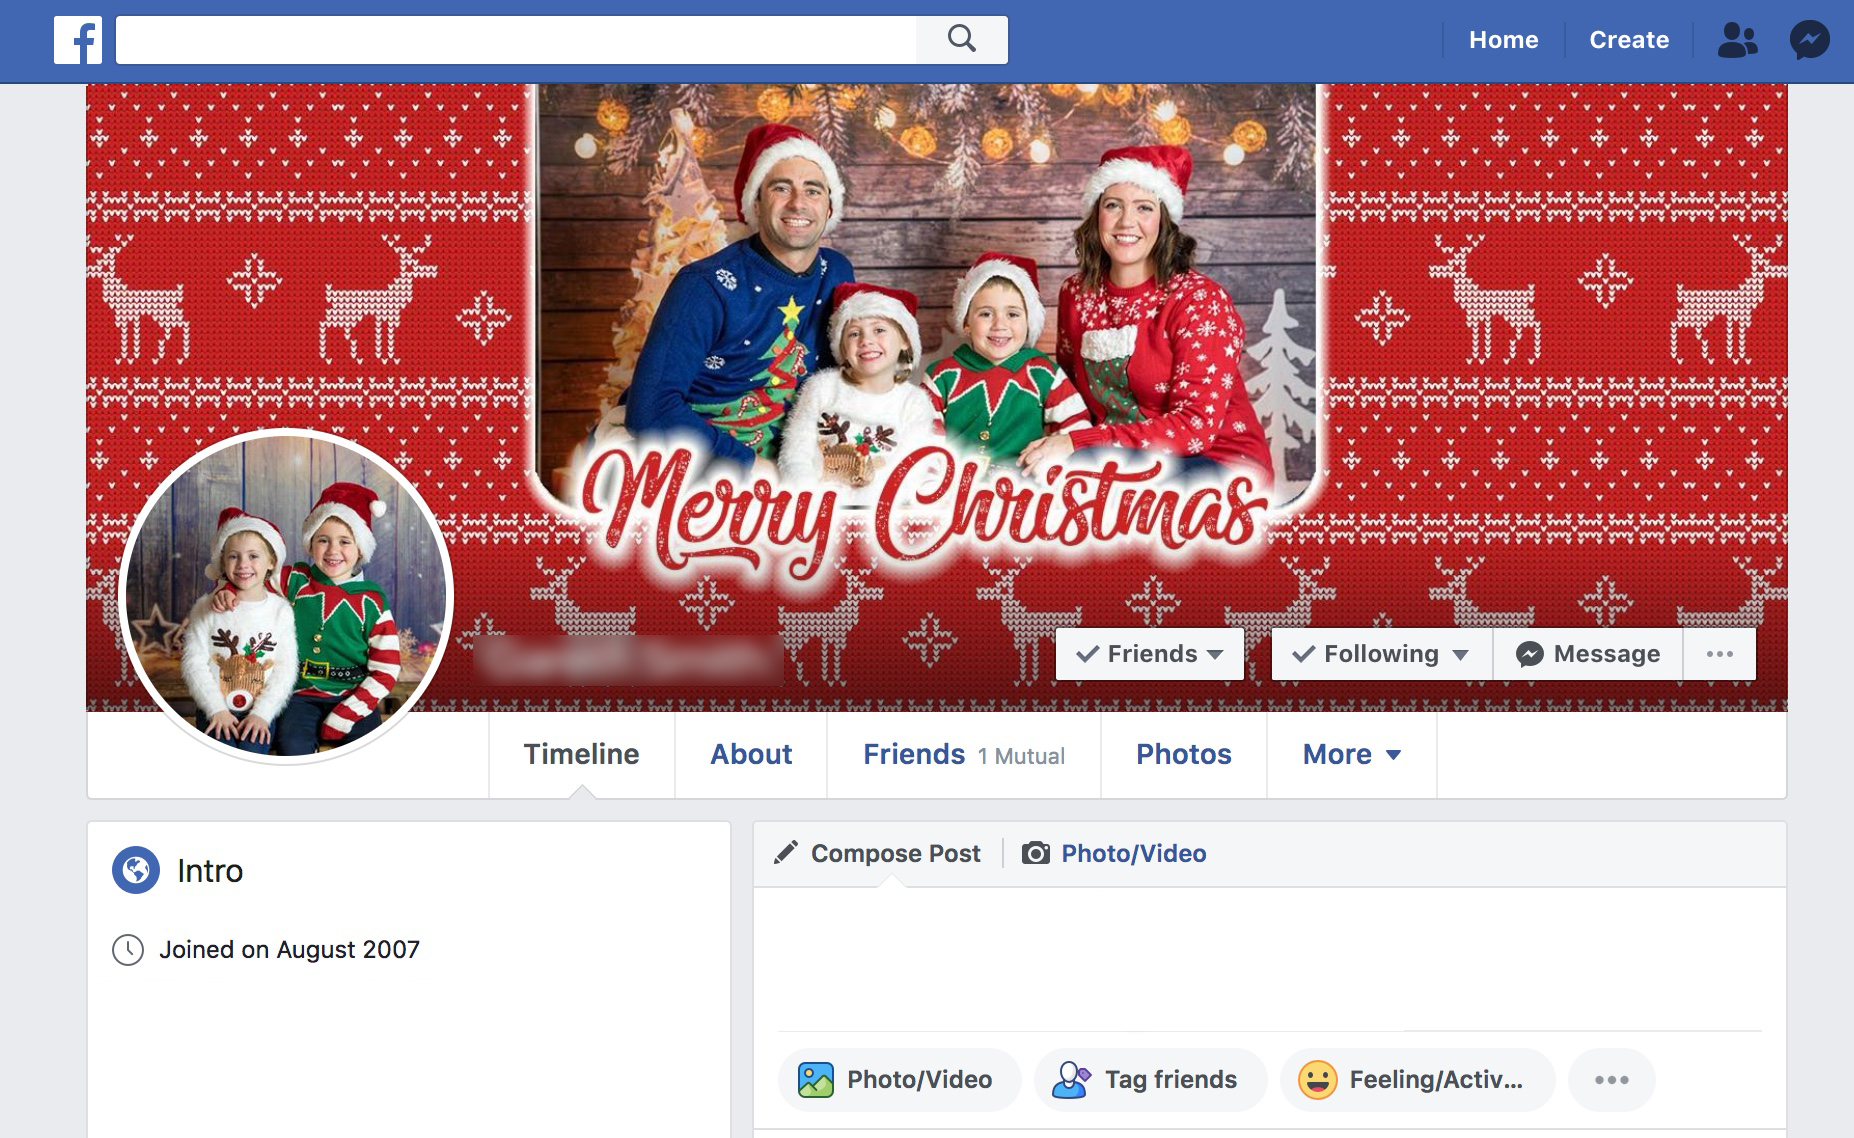 Includes Facebook cover image - Included with all packages, FB cover image that has been designed to fit cover area. Add another image from your shoot to create the perfect Christmas theme.